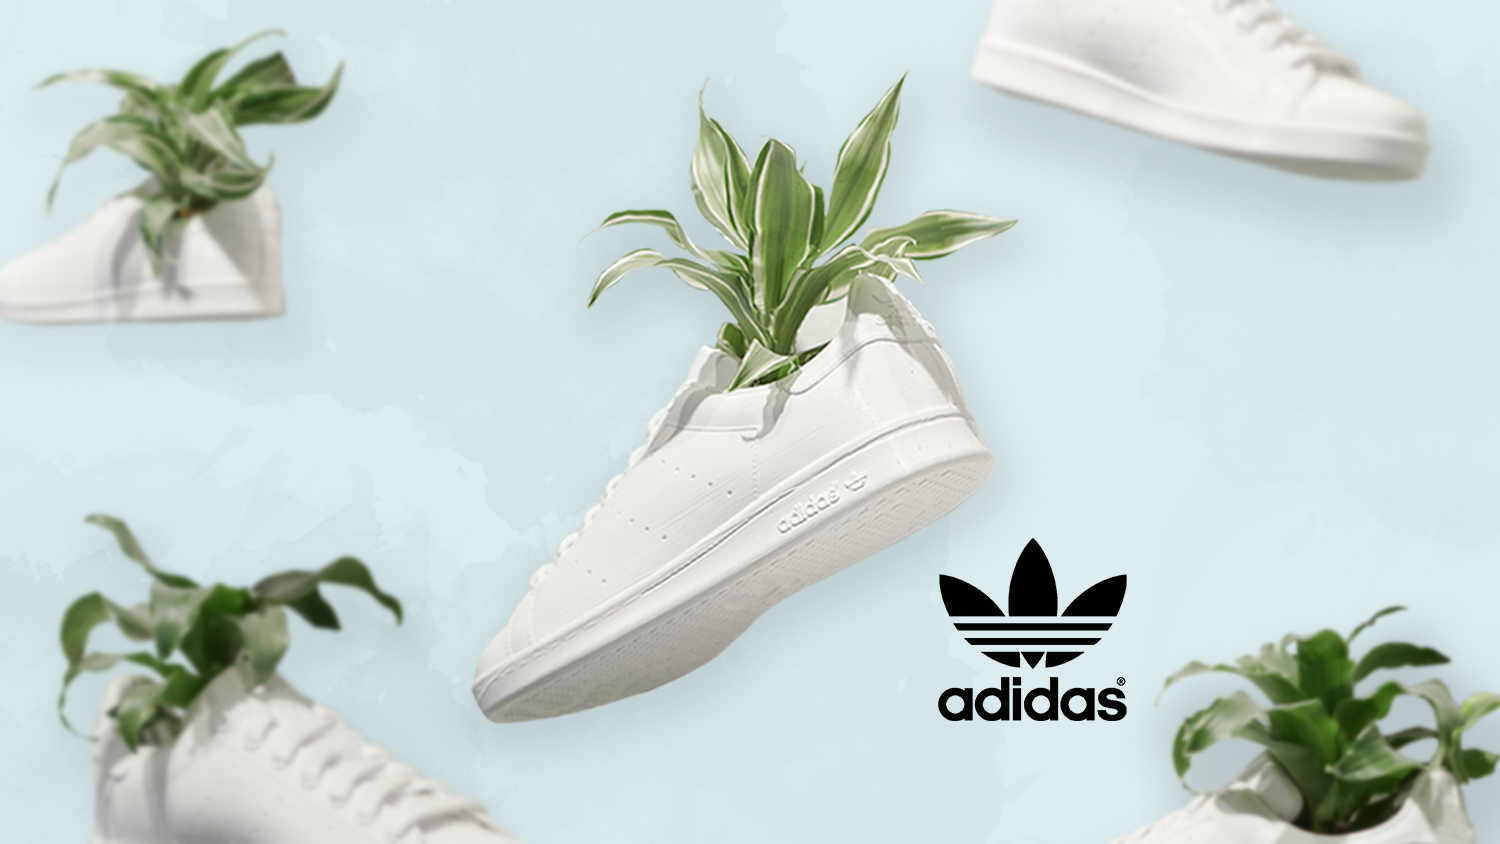 Adidas's New Vegan Leather Shoes Will Be Made From Fungi